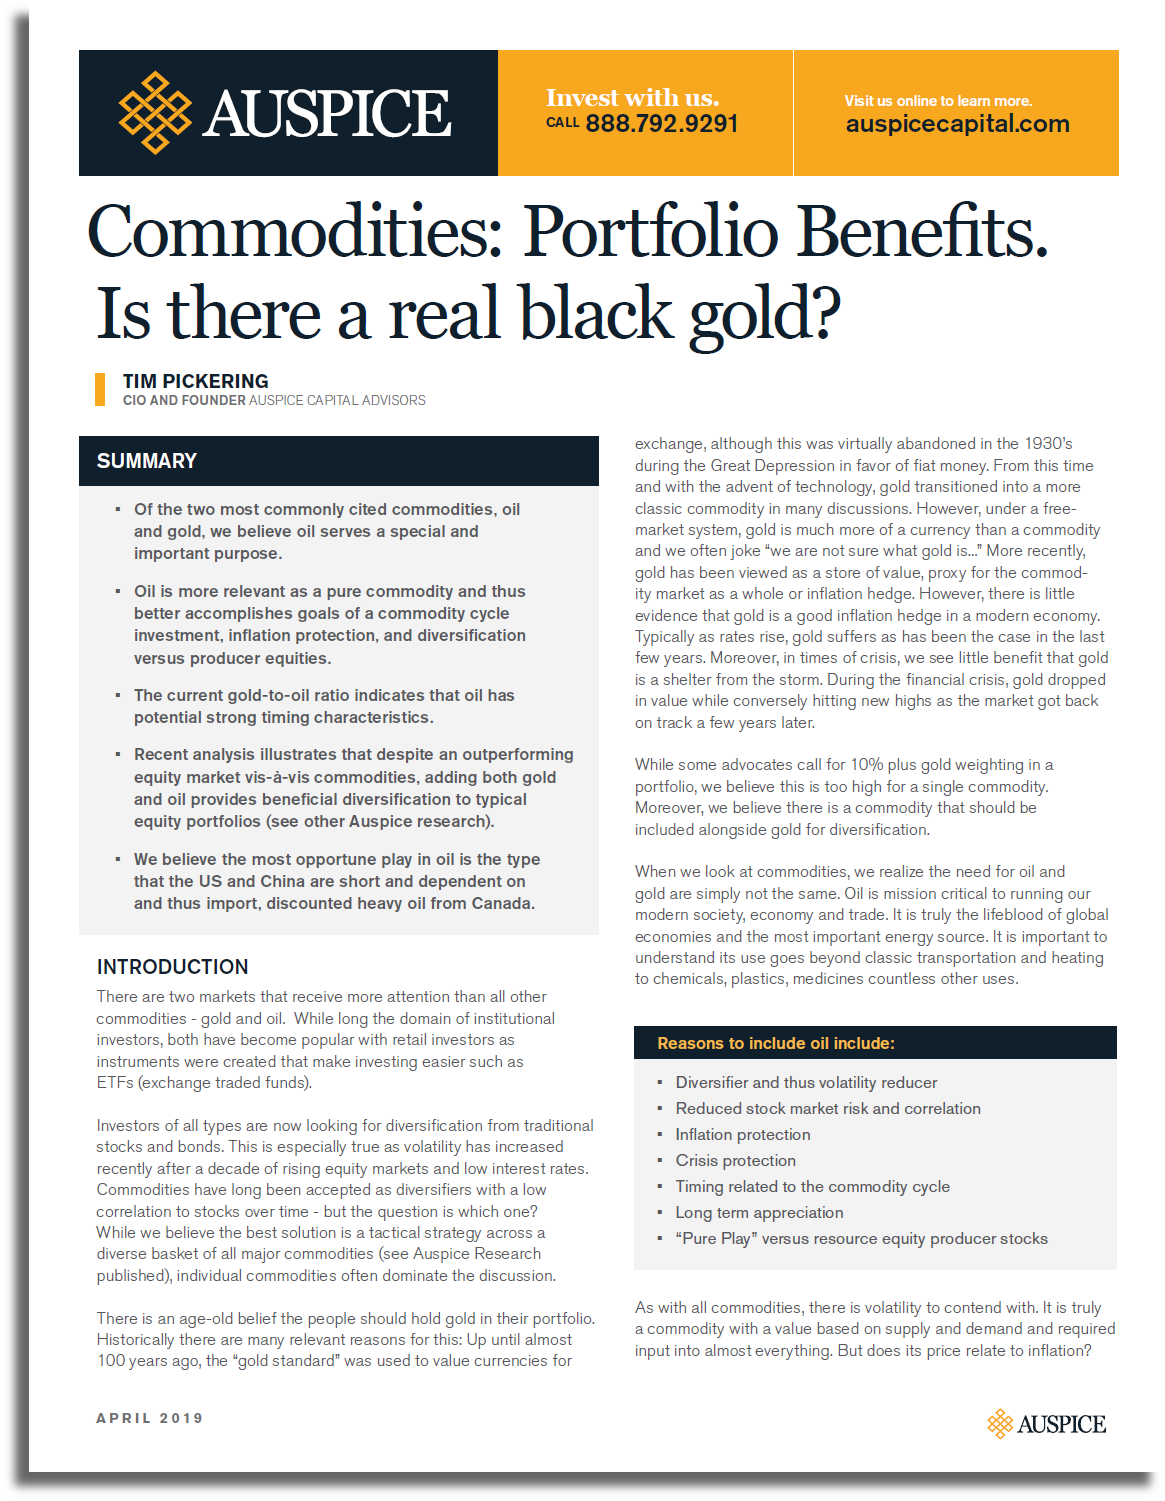 Commodities: Portfolio Benefits-Is there a real black gold?